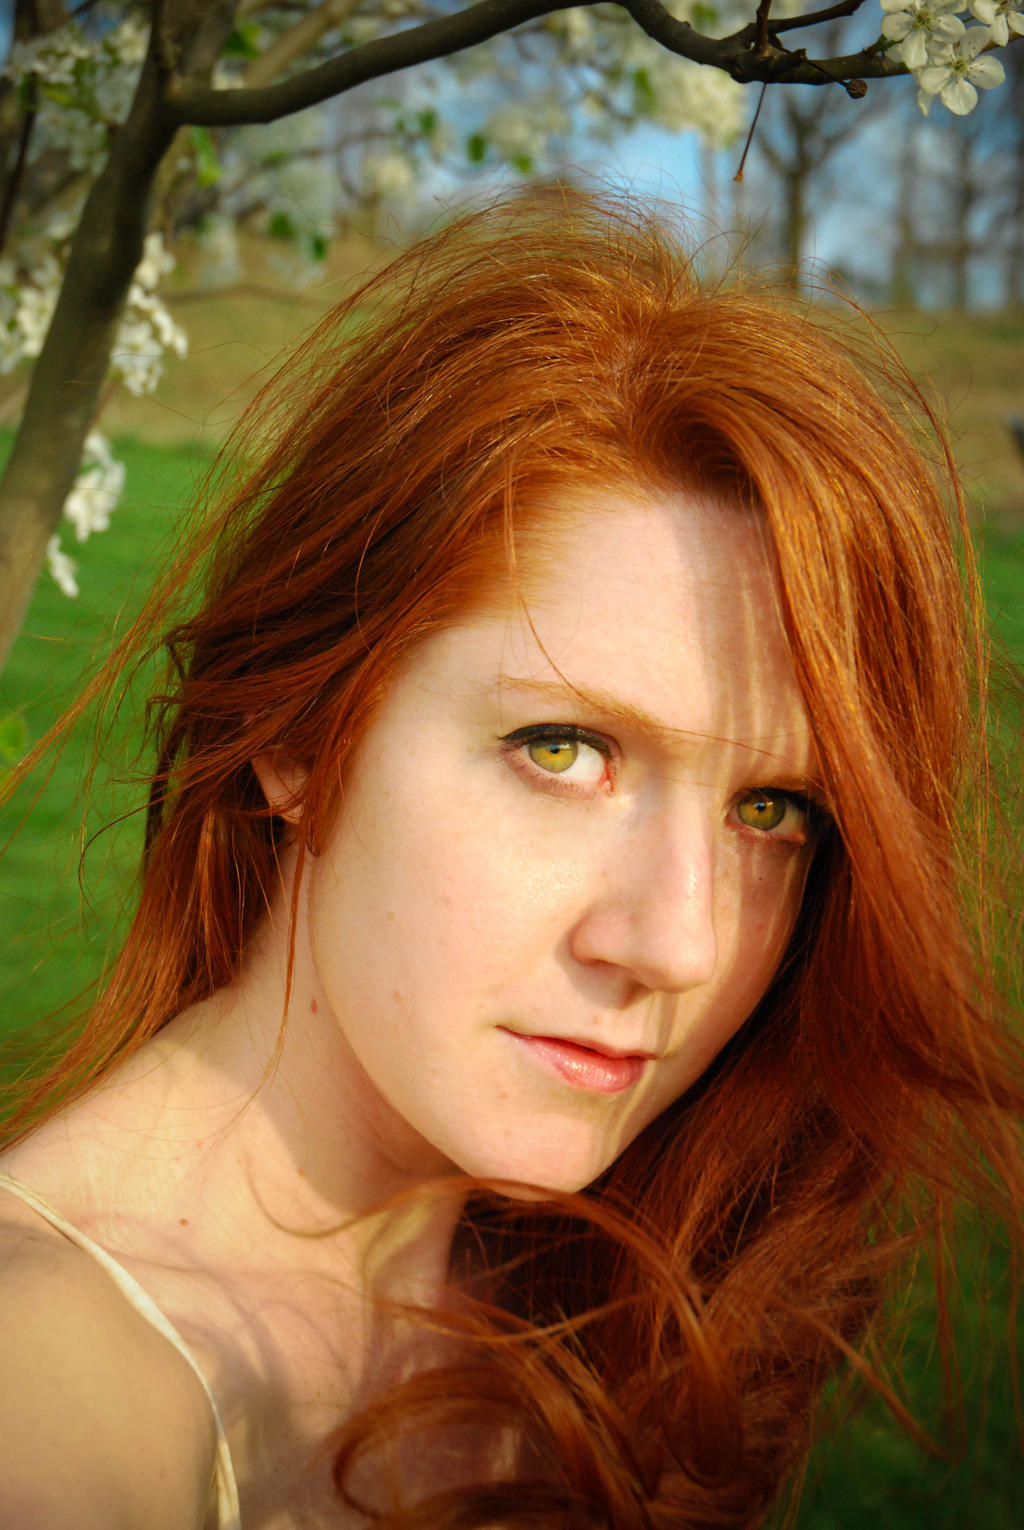 natural-angels  ... Windy Spring Day Natural Redhair by angelsfalldown1